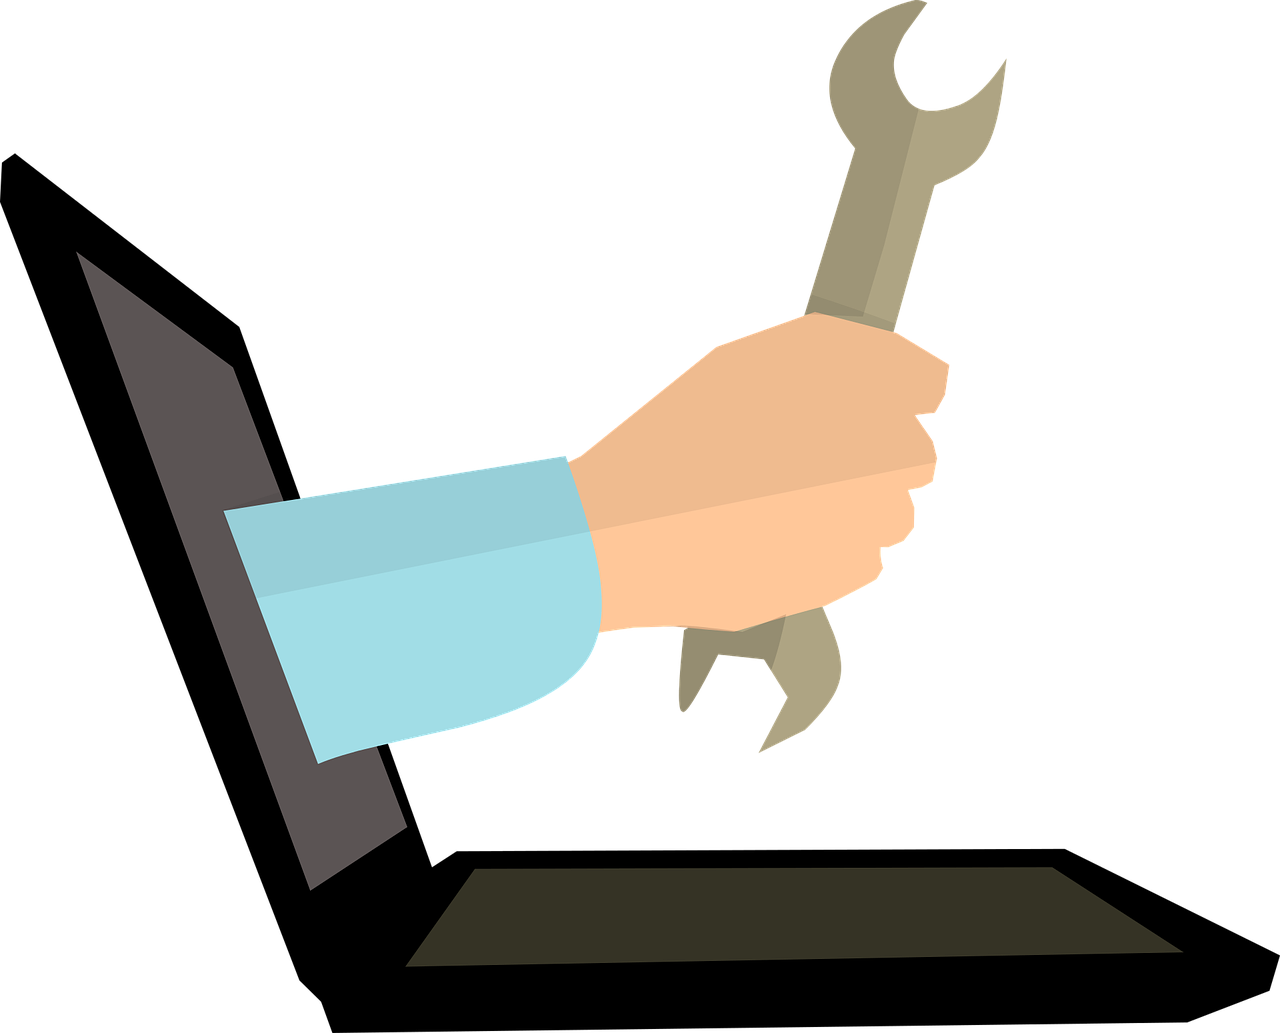 A Hand coming out of desktop screen to help fix the issues